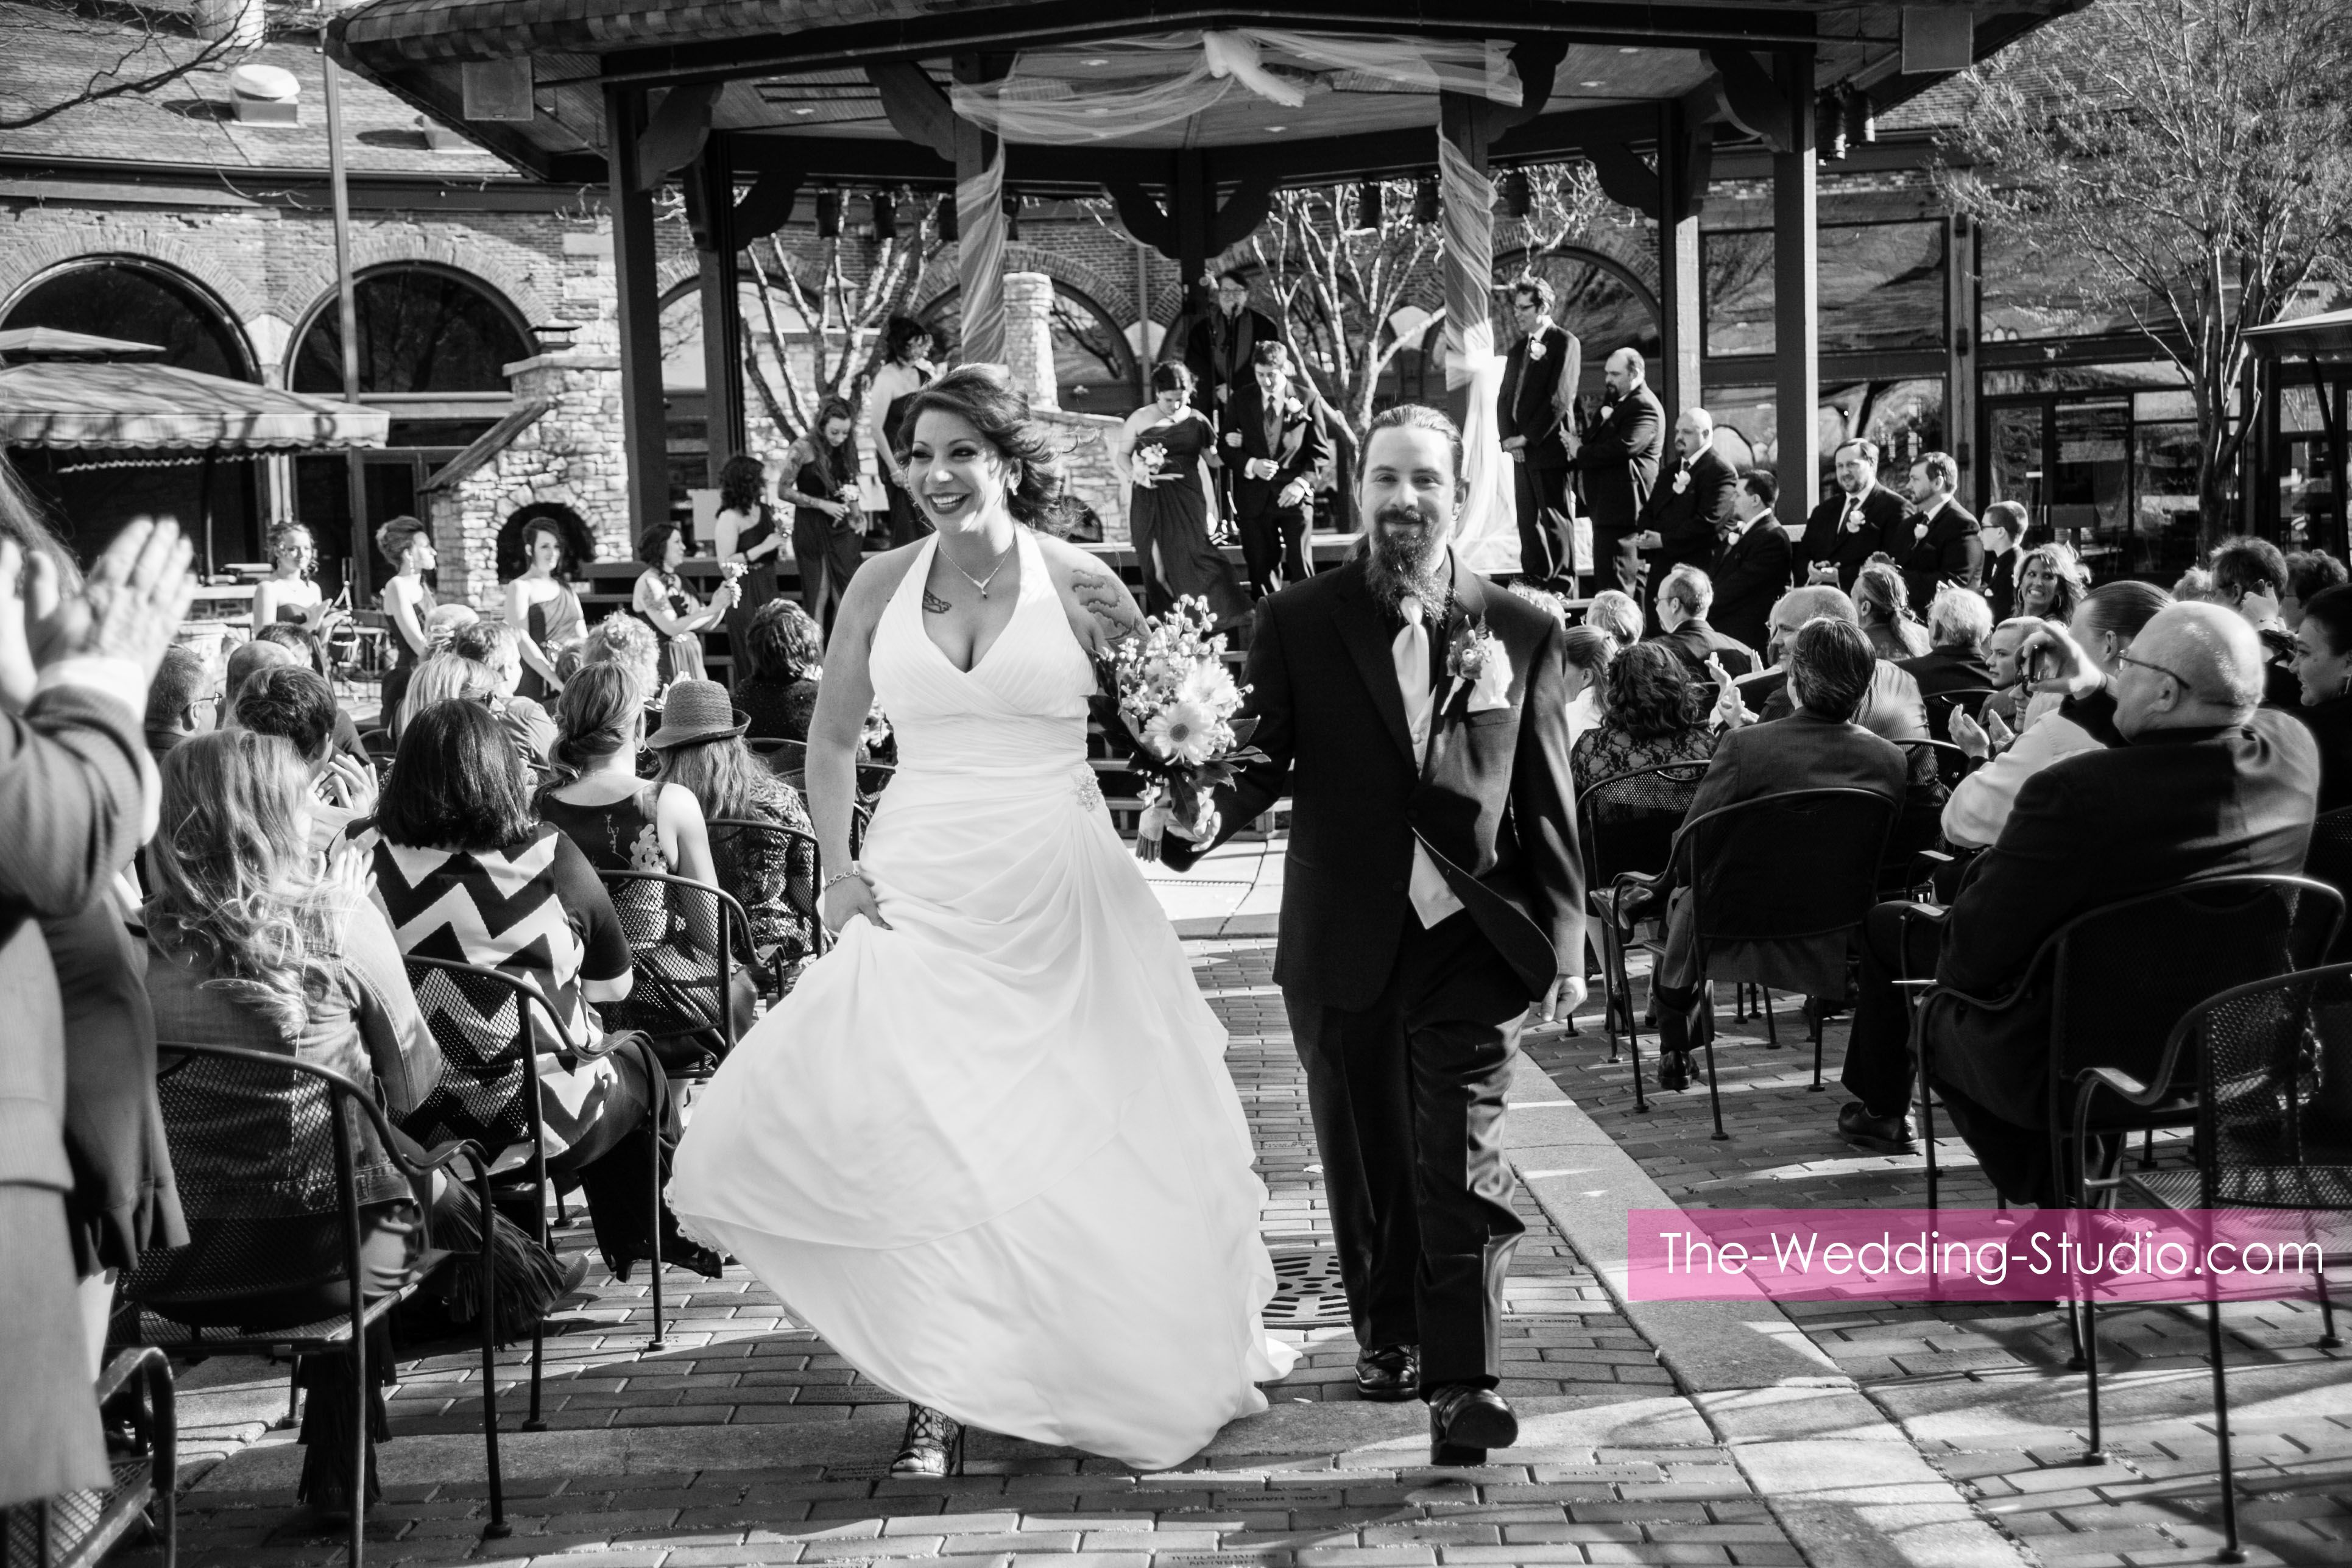 JUST MARRIED! Outdoor ceremony site during a Spring